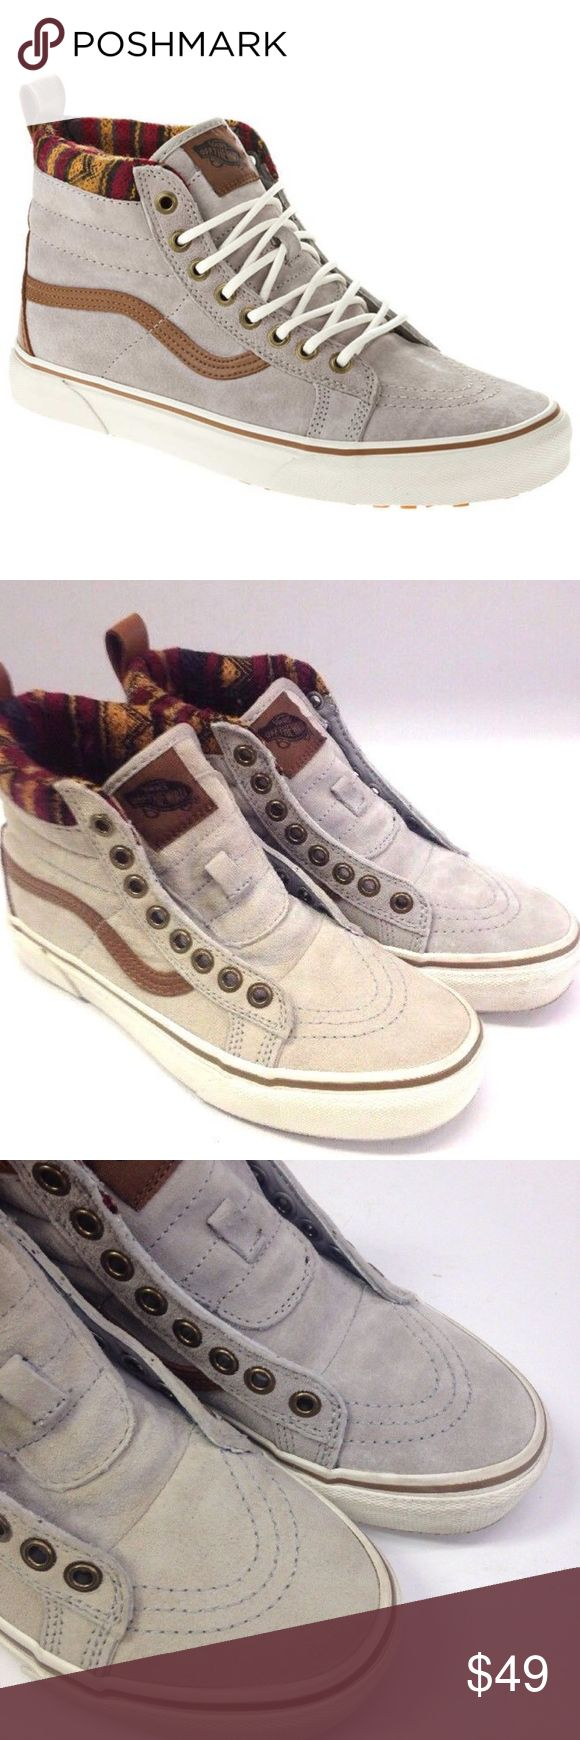 Vans Sk8 Hi Top MTE Scotchgard knit tribal trim Vans Sk8 Hi Top MTE Scotchgard with knit tribal trim  Men size 3.5  Women Size 5  No laces Lightly worn See pictures for condition Vans Shoes Sneakers